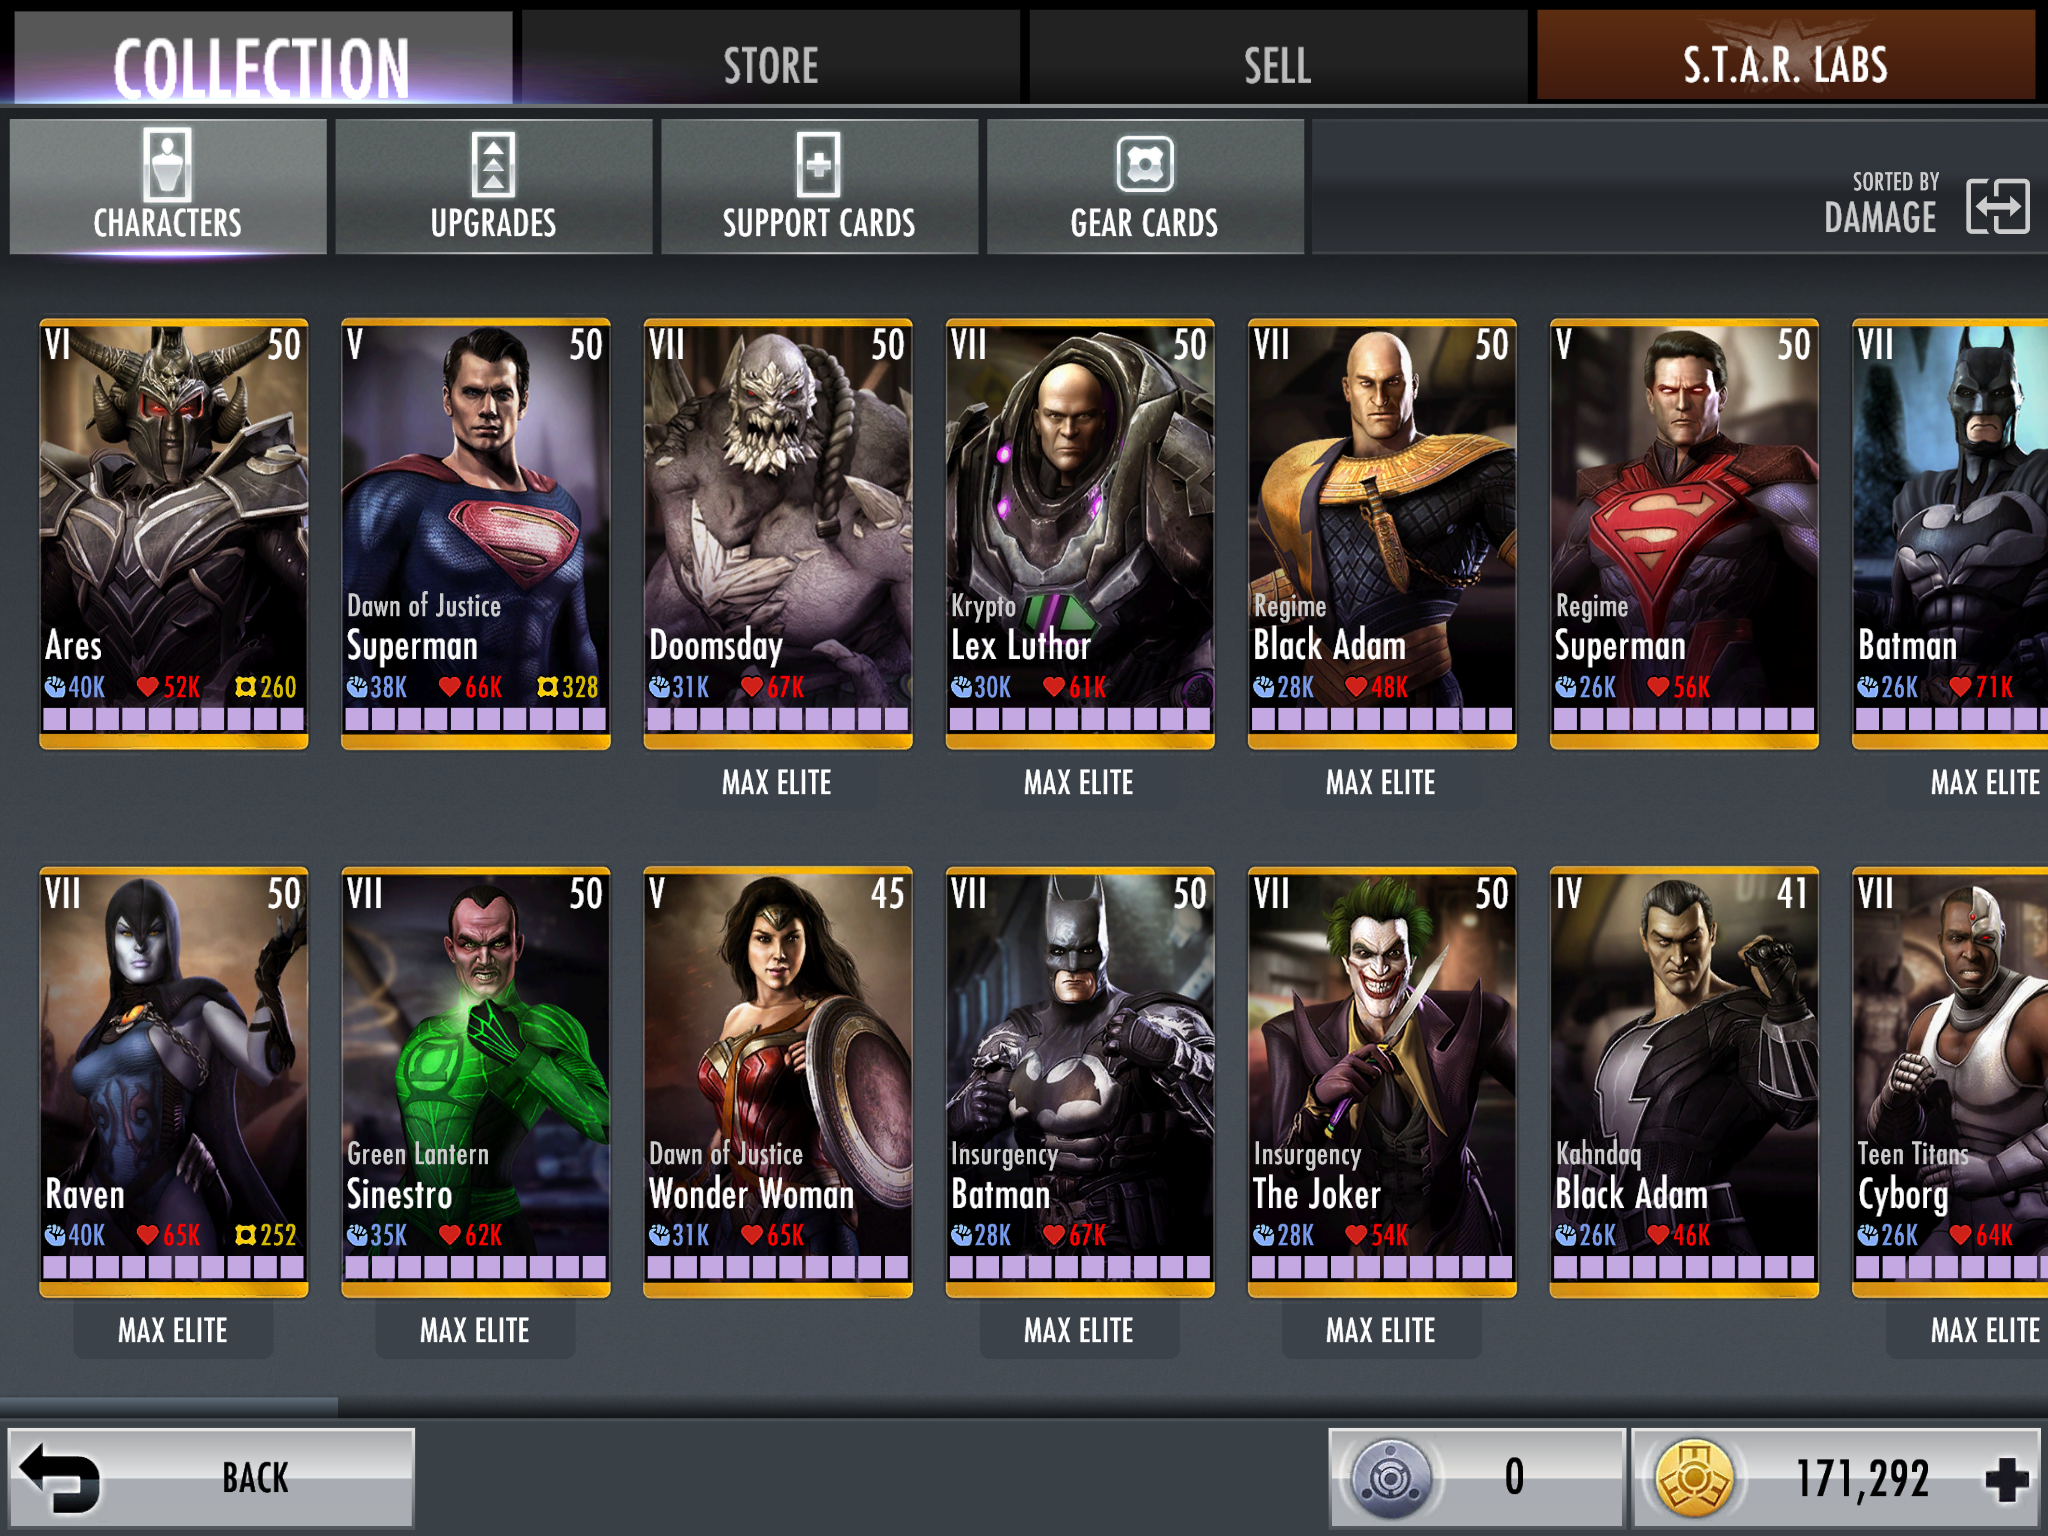 Took me a year to build this ultimate InjusticeGods Among